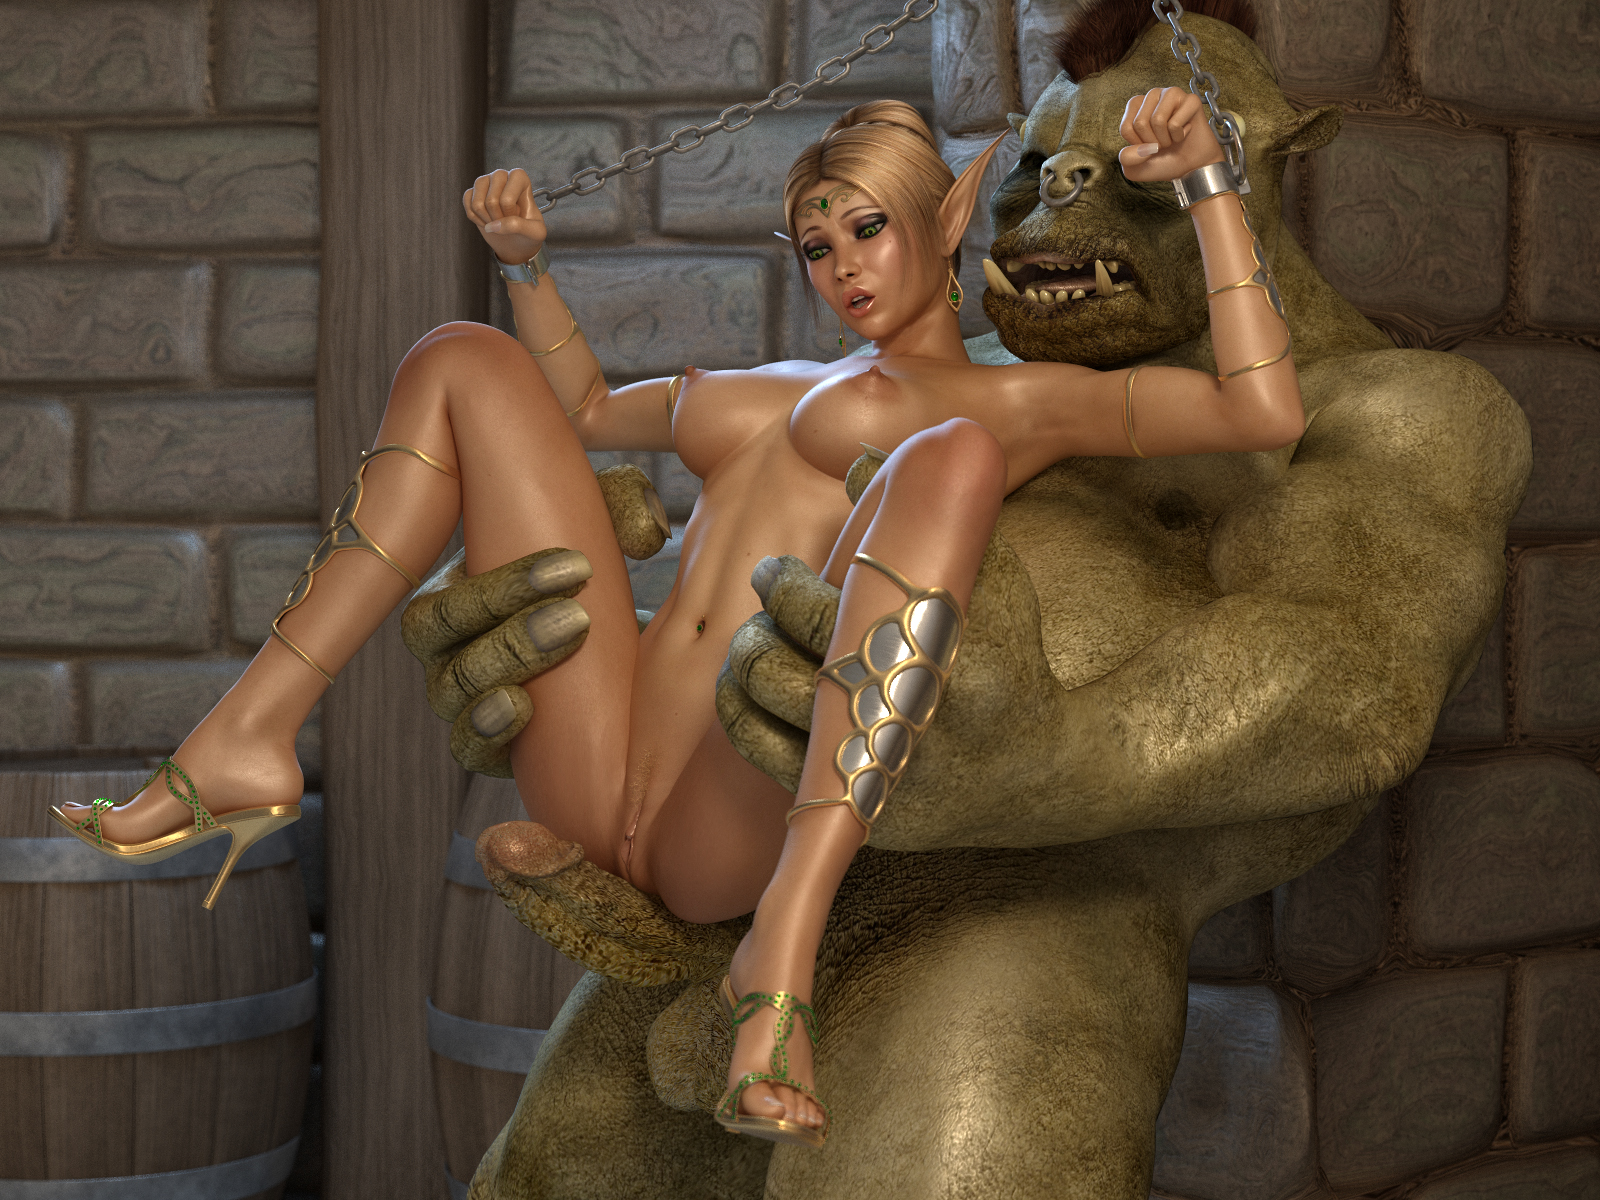 Free 3d monsterporn download adult gallery